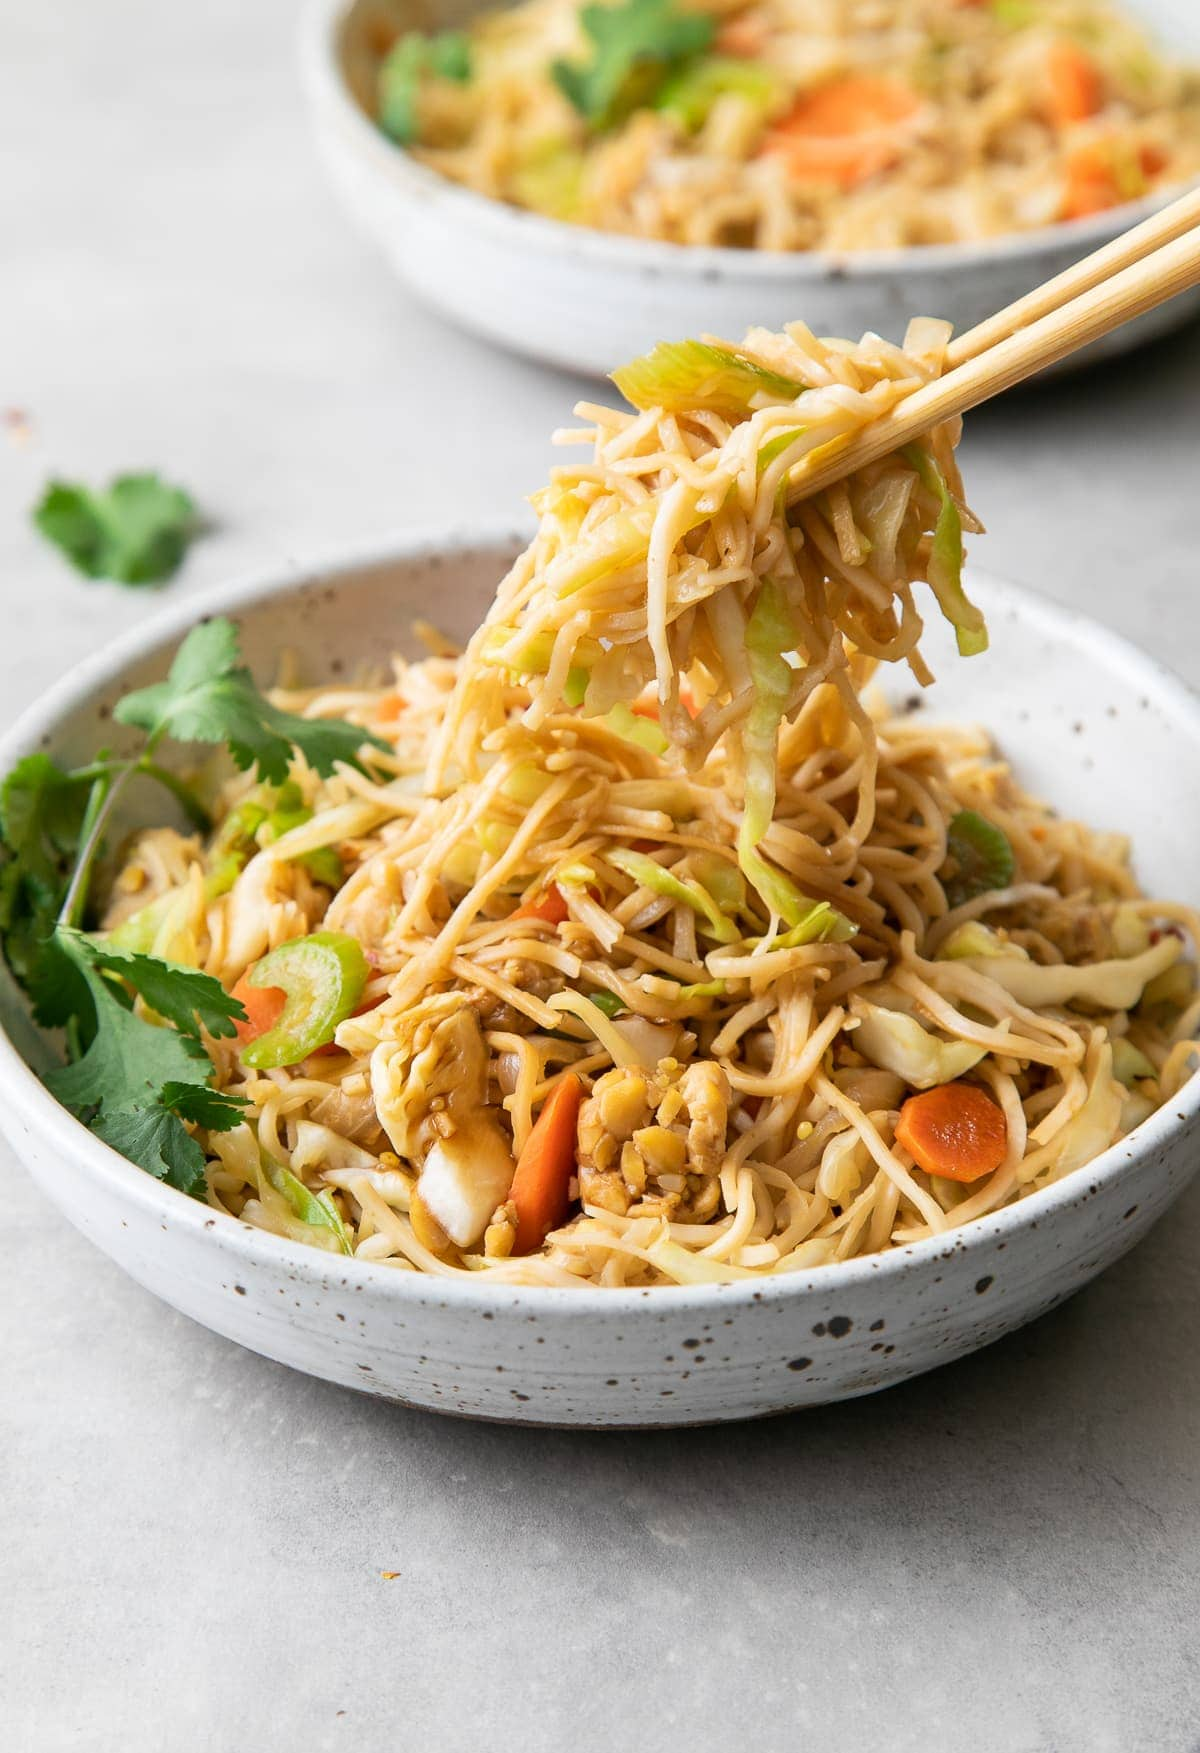 side angle view showing chow mein being held with chop sticks.